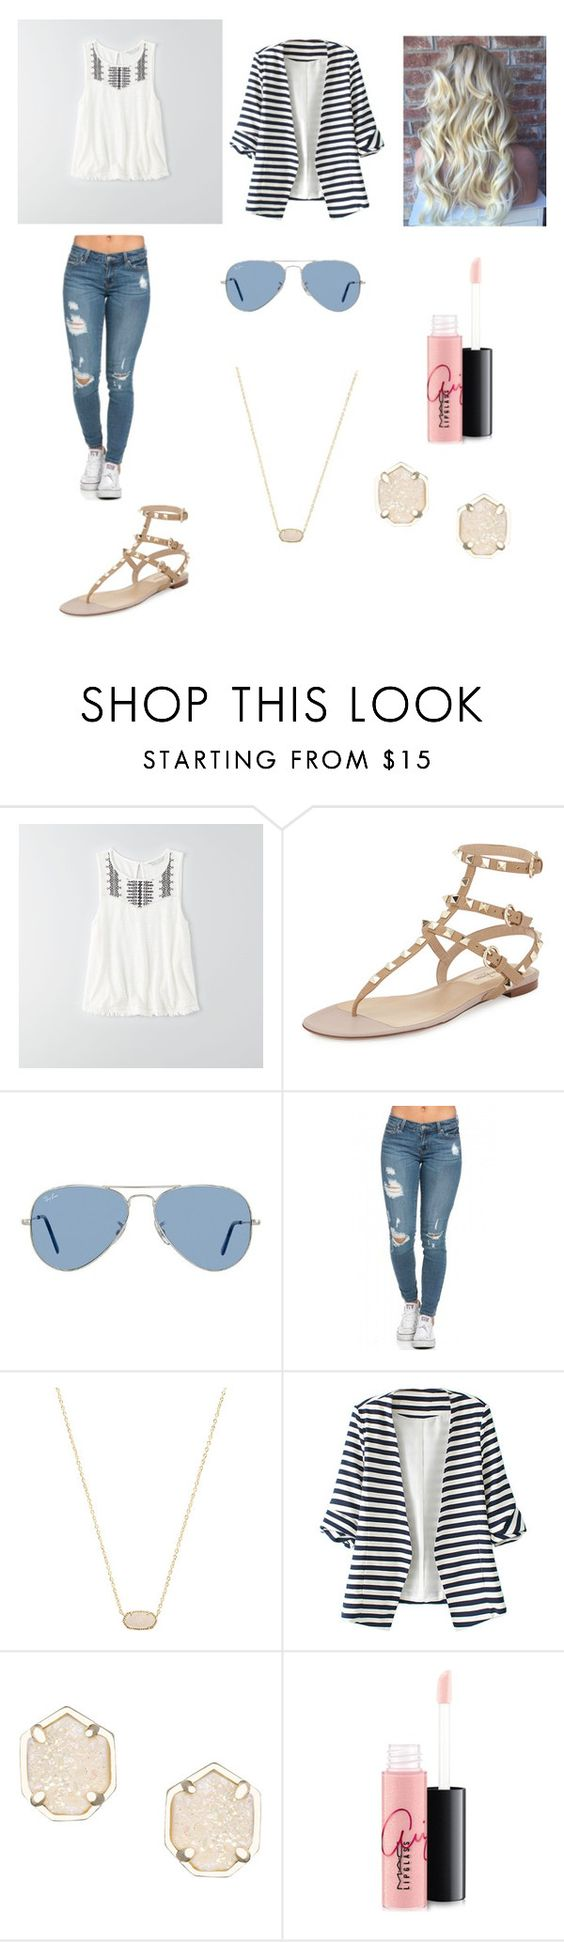 """""""❤️"""" by fashiongirl700 ❤ liked on Polyvore featuring American Eagle Outfitters, Valentino, Ray-Ban, Kendra Scott, WithChic and MAC Cosmetics"""